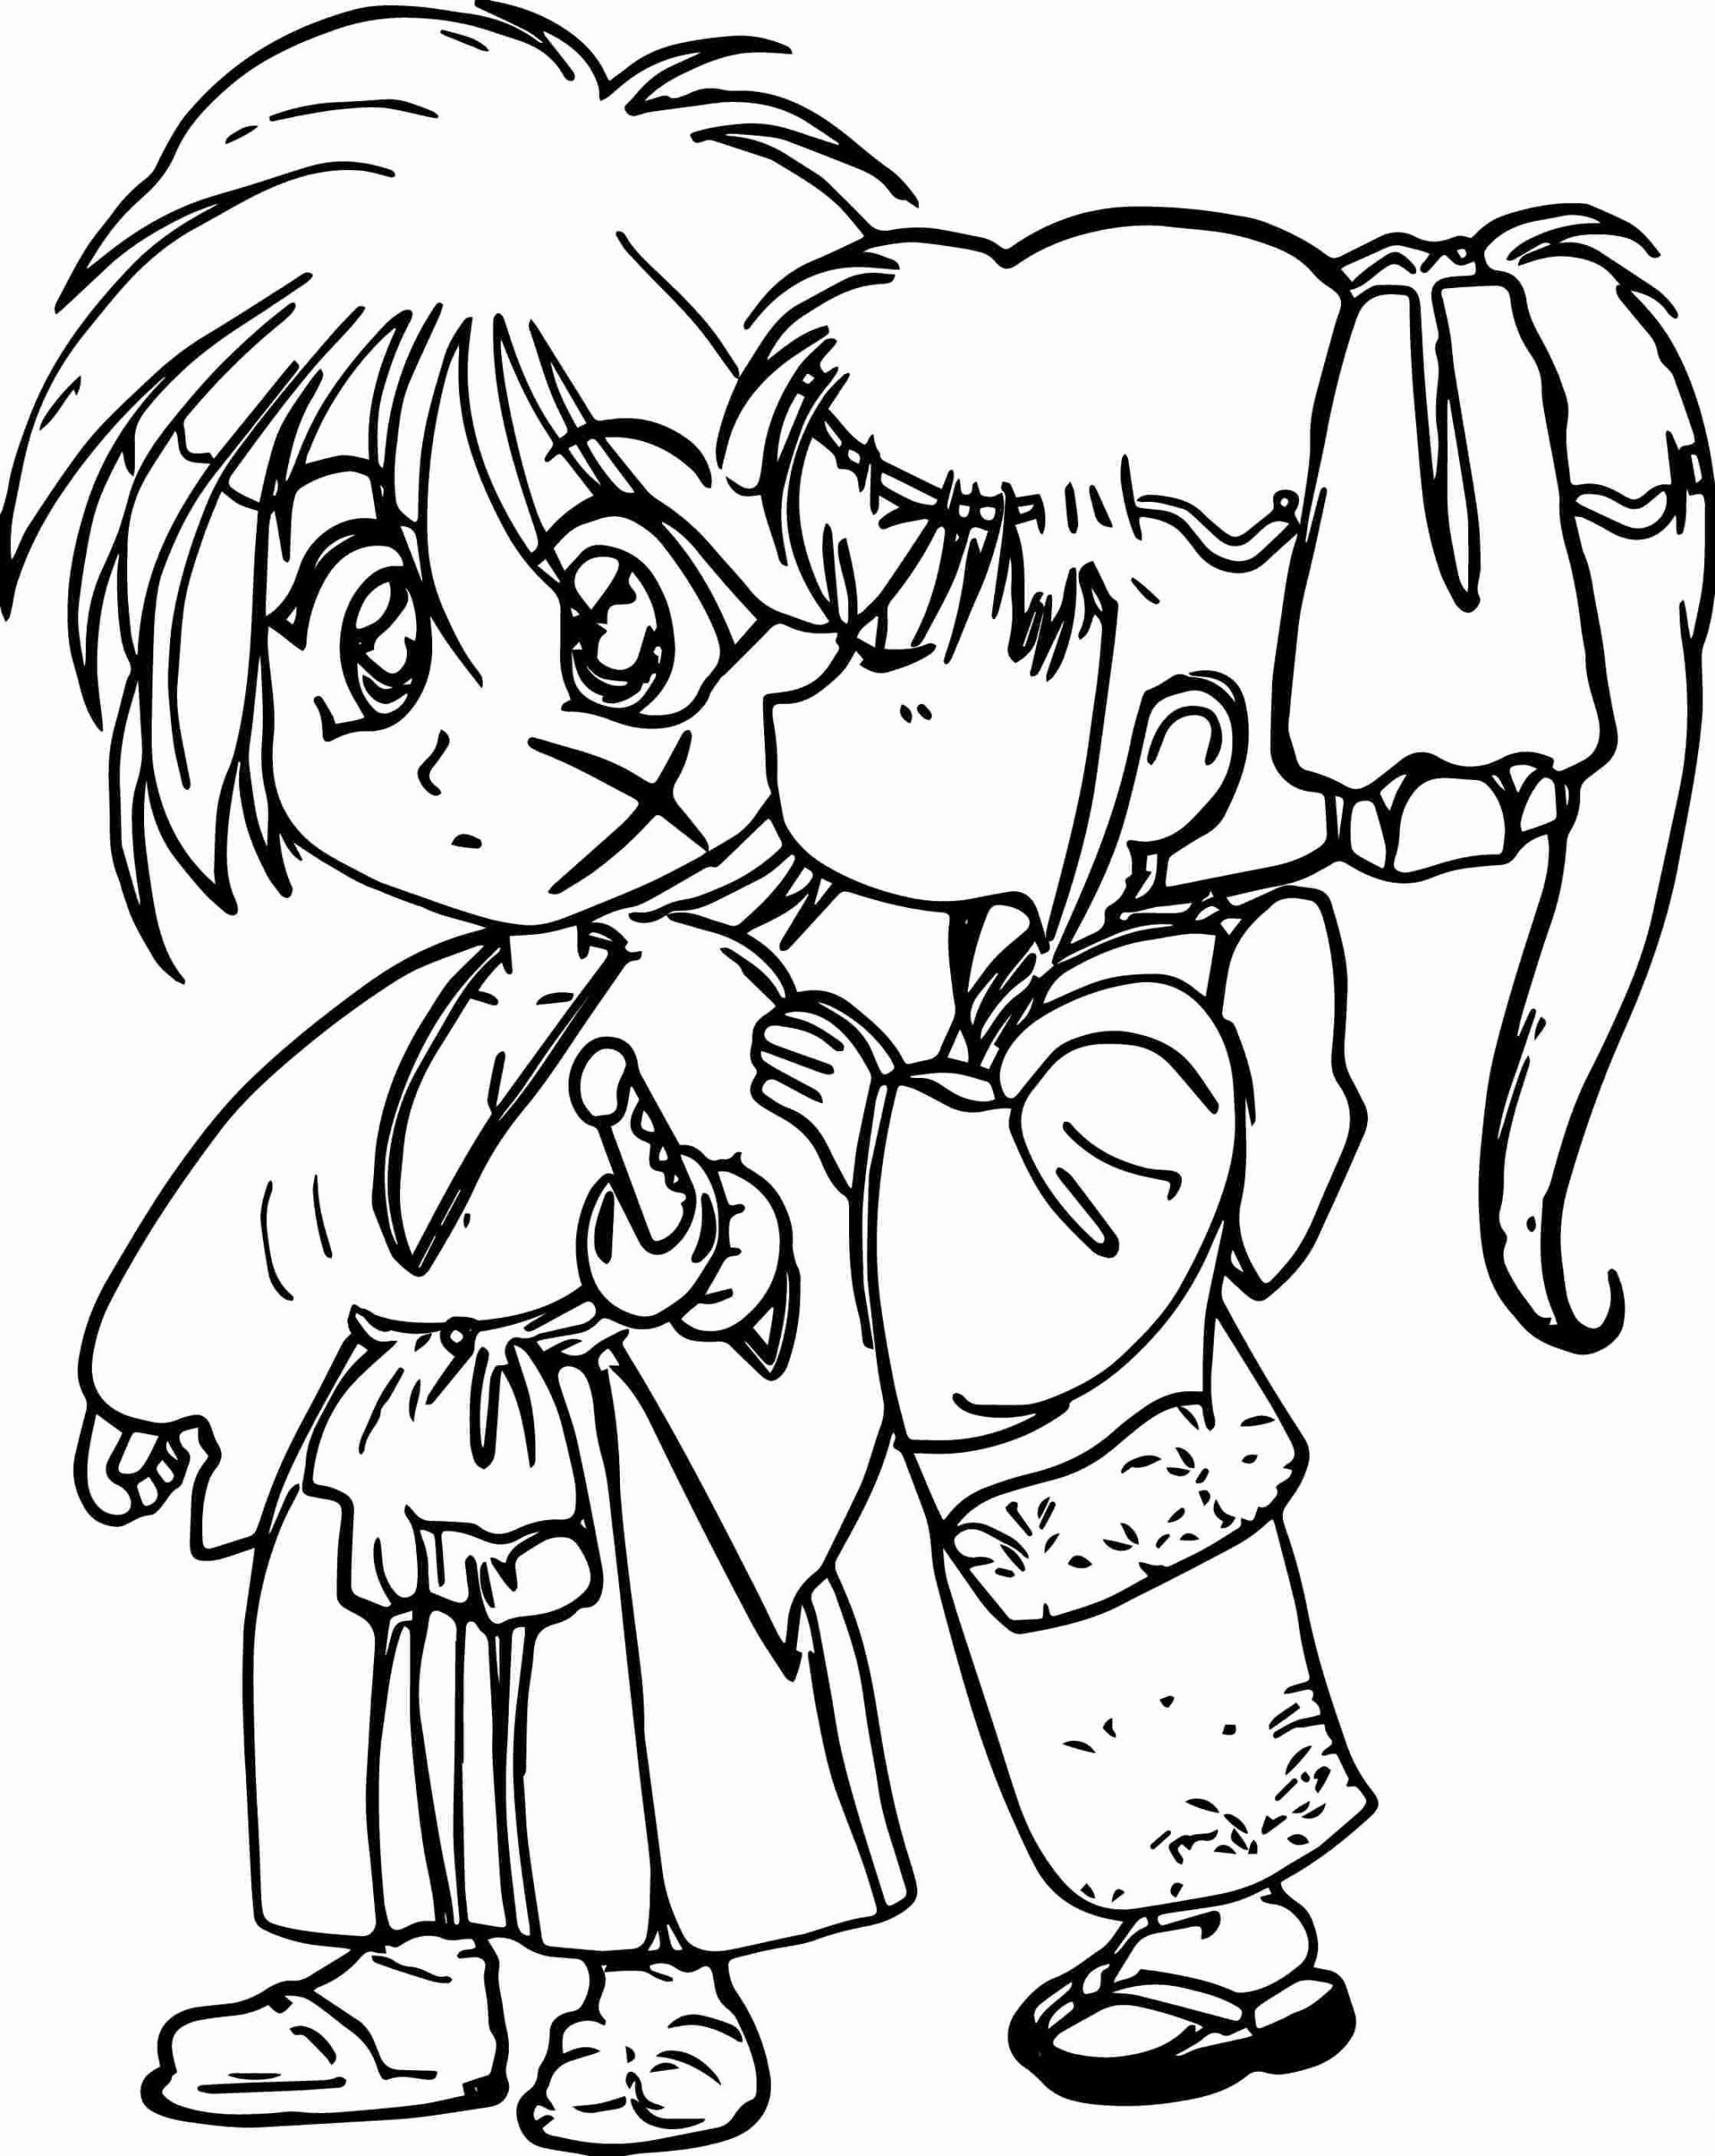 Boy Anime Coloring Pages Elegant Coloring Pages Of Boy And Girl Kissing 56 Cute Anime Love Coloring Pages Kids Christmas Coloring Pages Birthday Coloring Pages